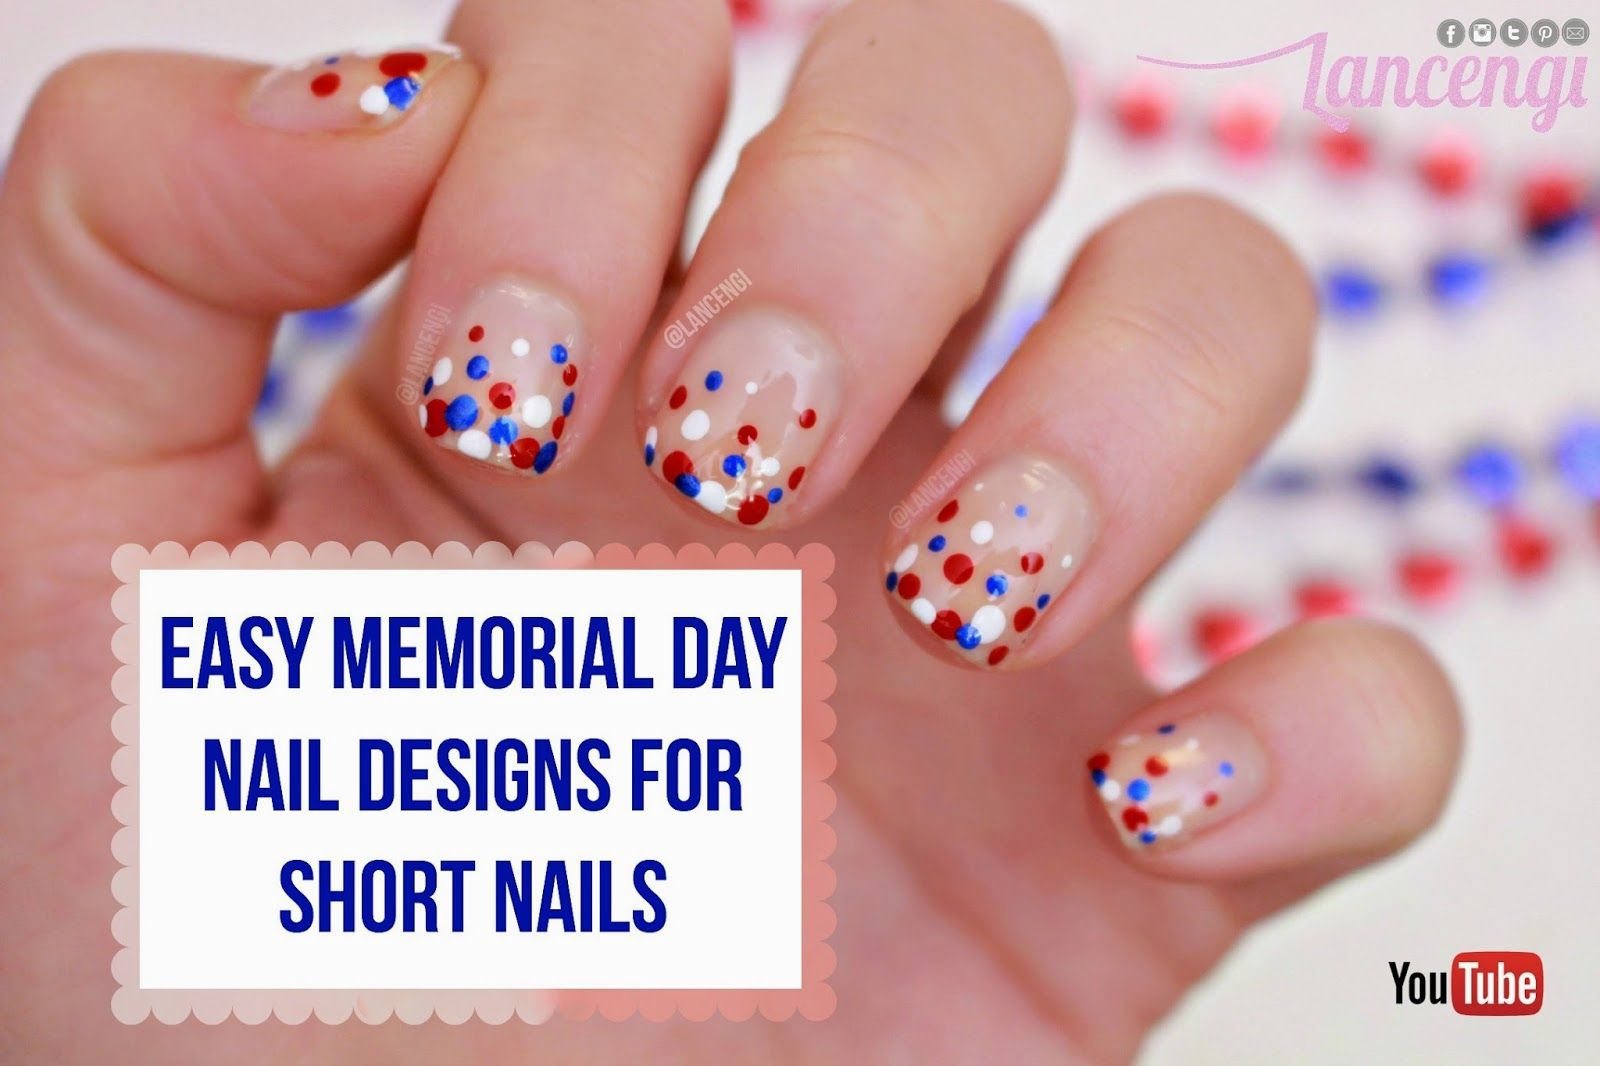 Easy Nail Art For Beginners Patriotic Red White Blue Chevron French Tip Steps To Create T Patriotic Nails Design Patriotic Nails Easy Nail Designs